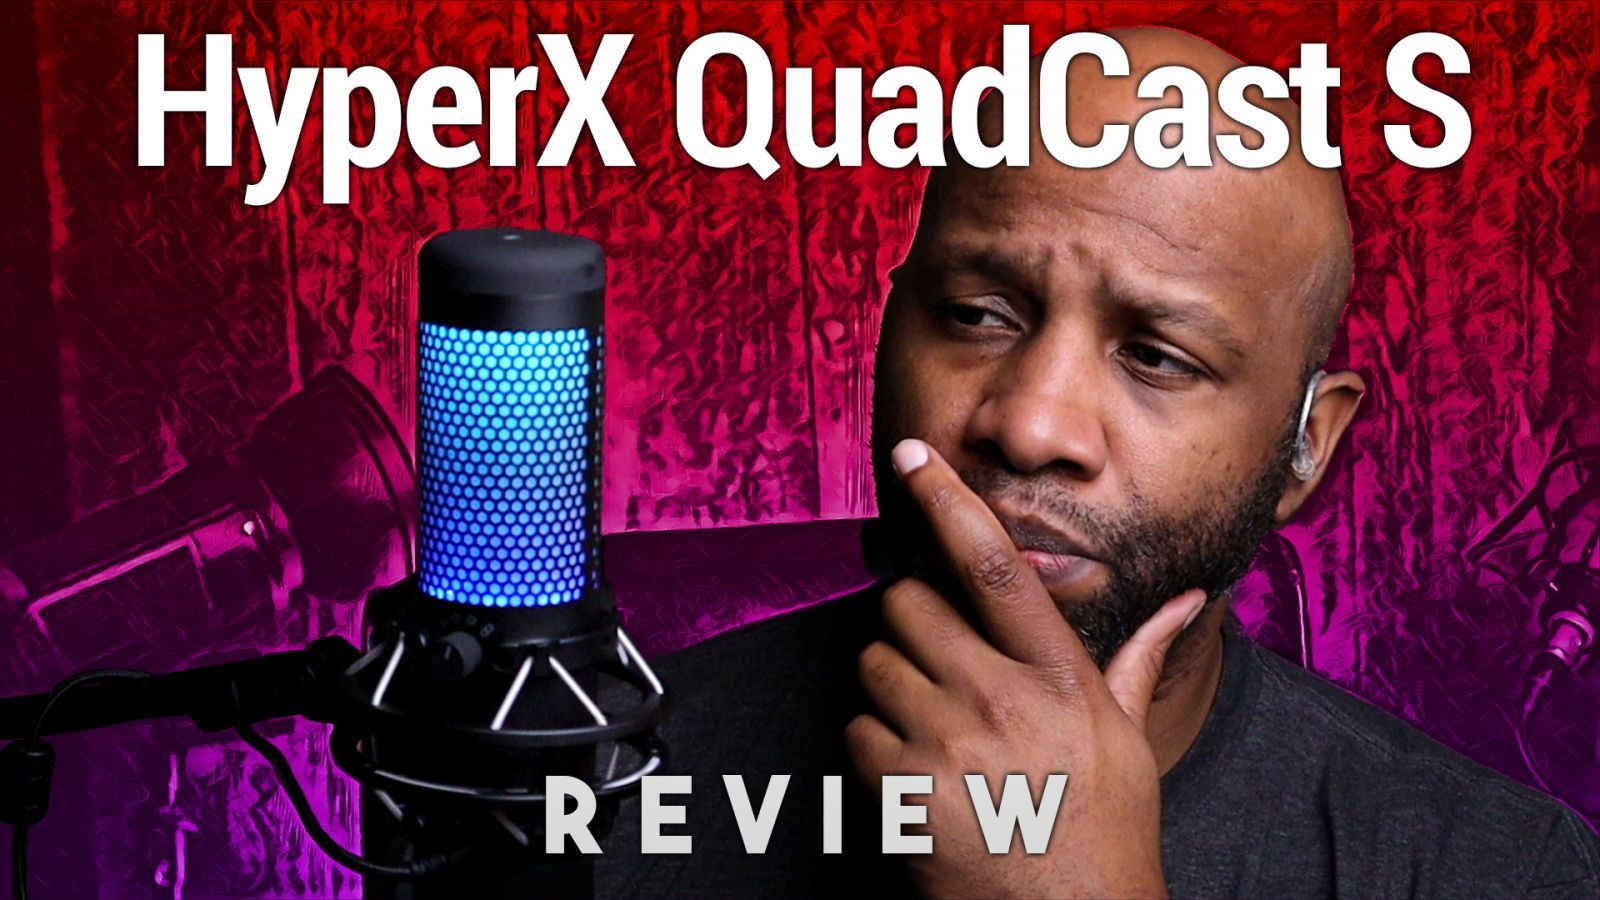 HyperX QuadCast S Review - USB Microphone With Dynamic RGB Lighting Effects